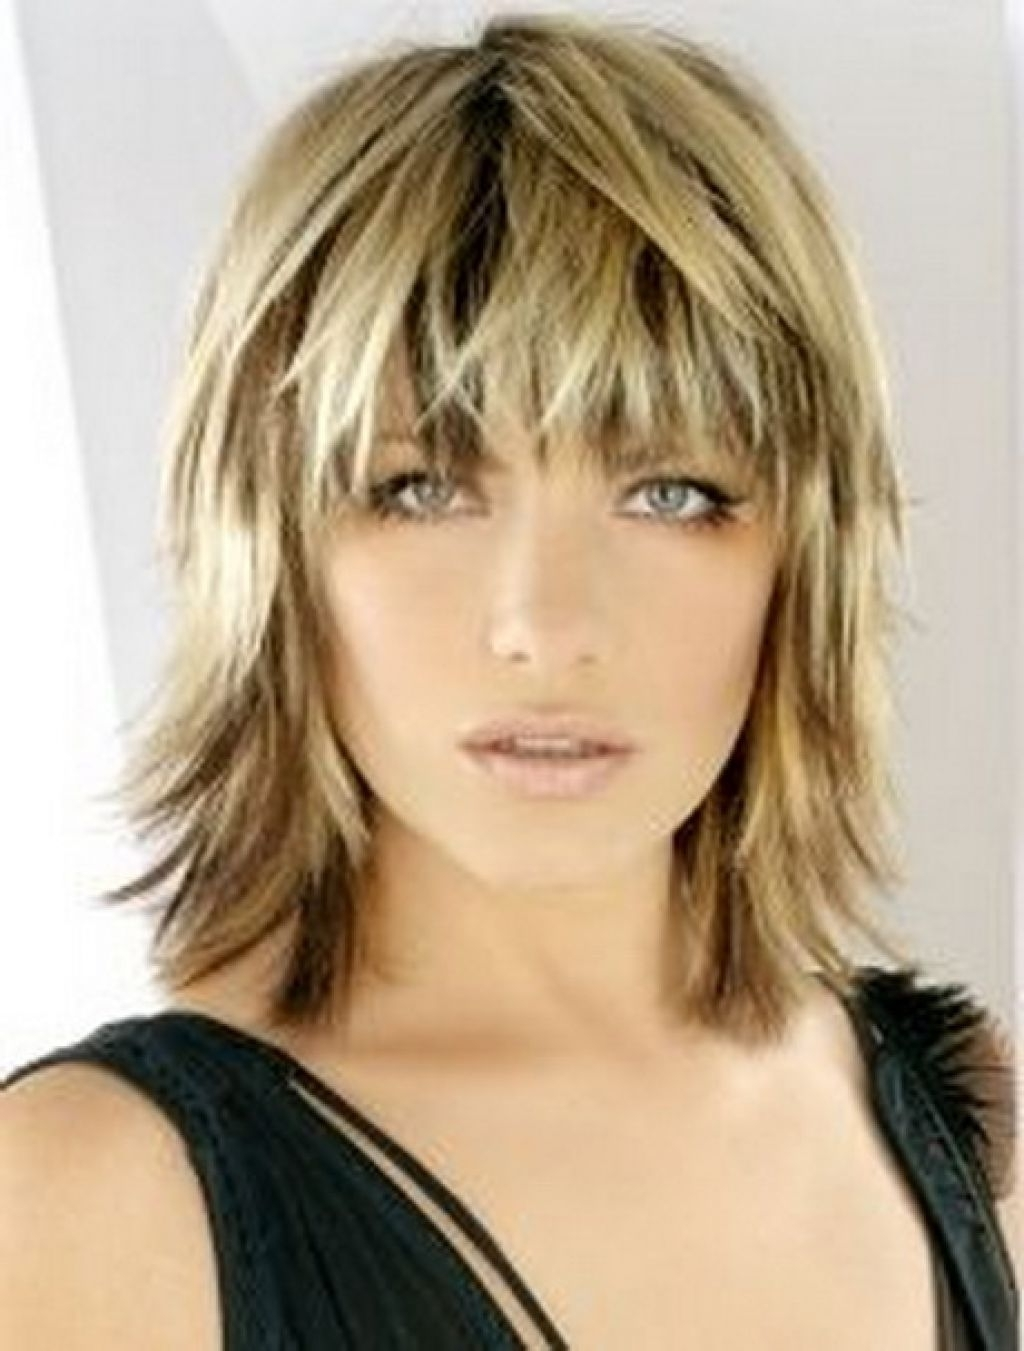 Well Known Medium Shaggy Hairstyles With Bangs Pertaining To Blonde Medium Length Choppy Shag Haircut With Wispy Bangs And Dark (View 14 of 15)